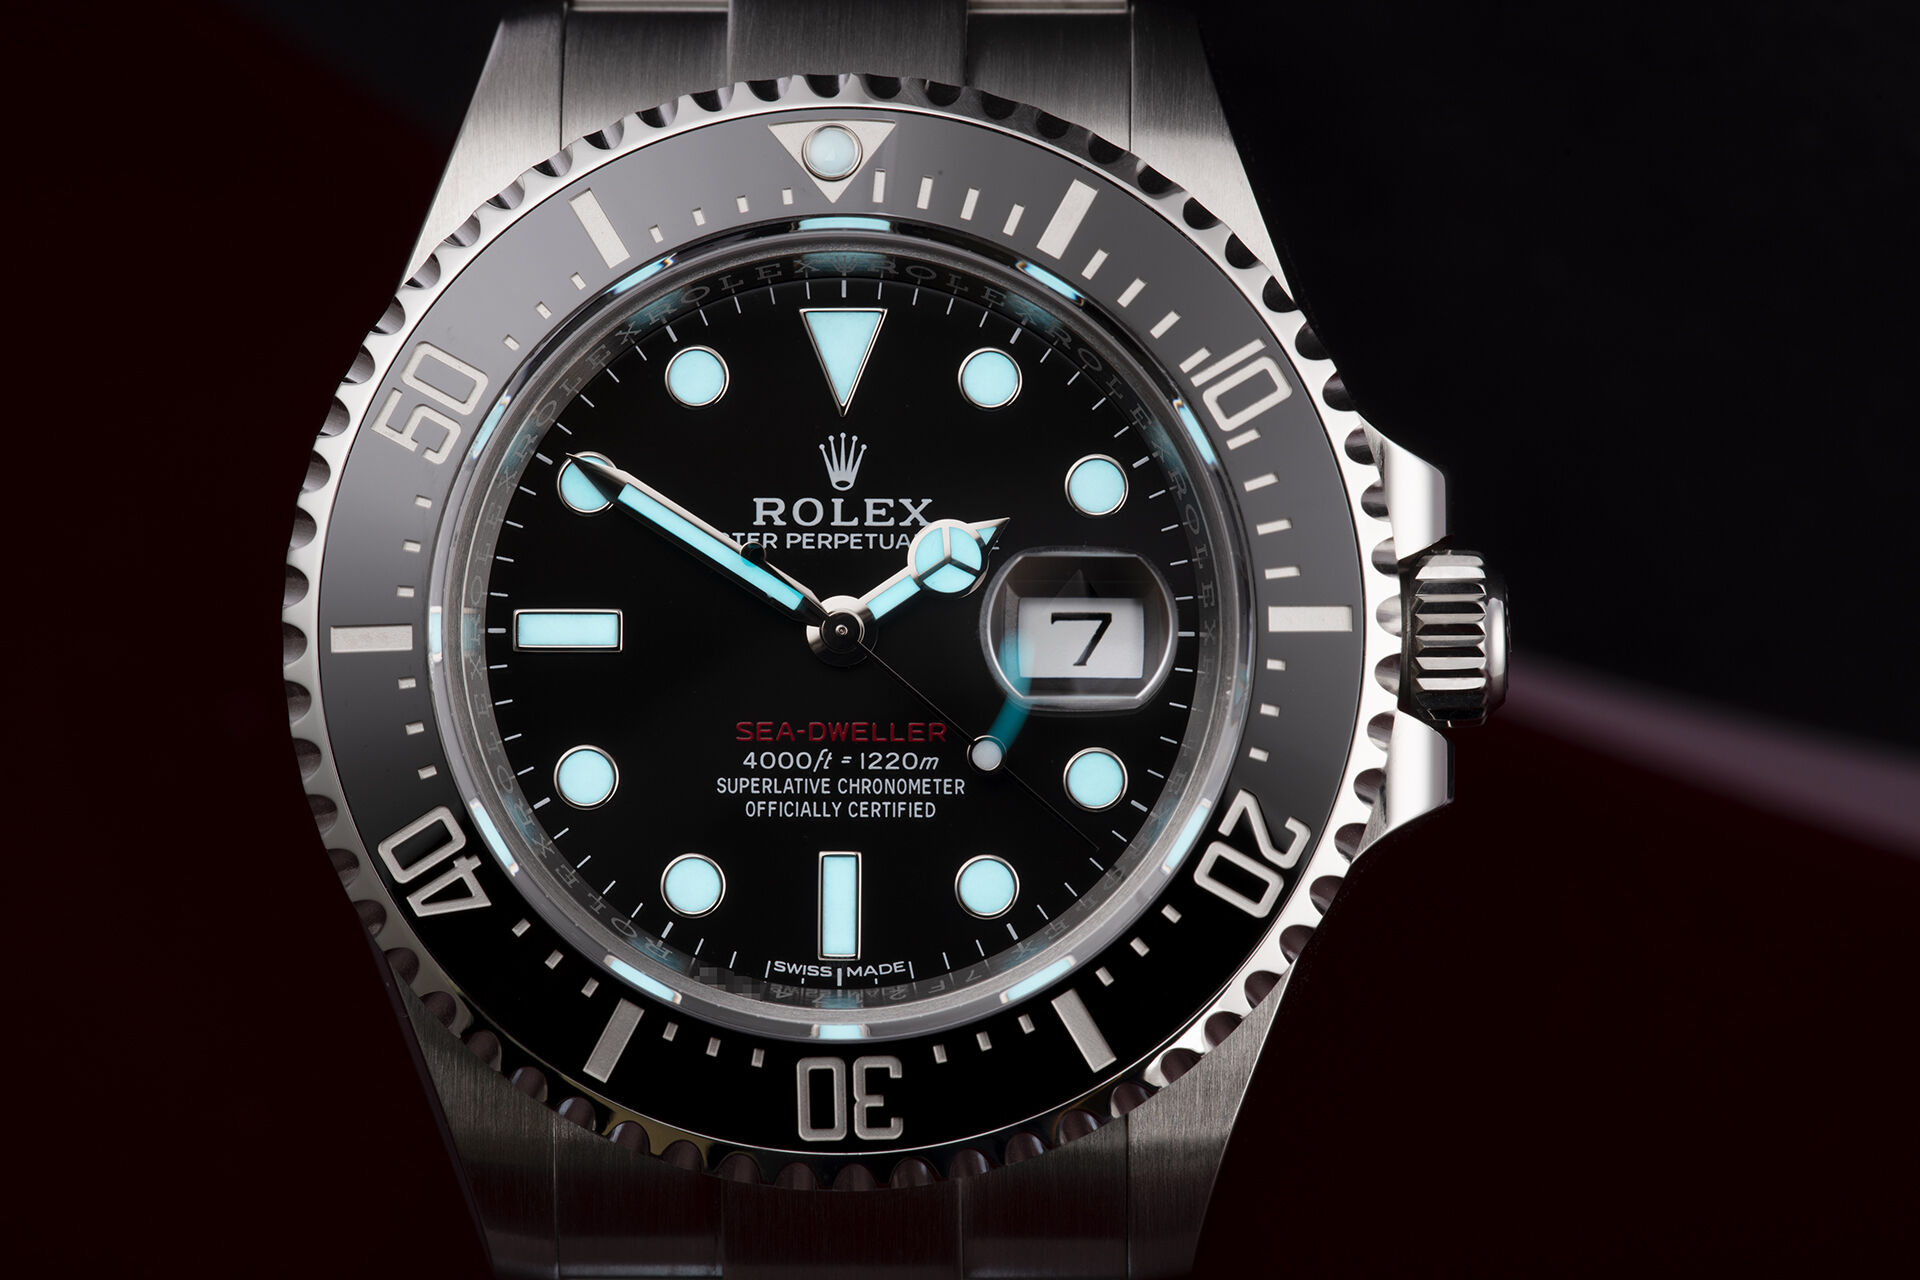 ref 126600 | Red Writing - '1st Series' | Rolex Sea-Dweller